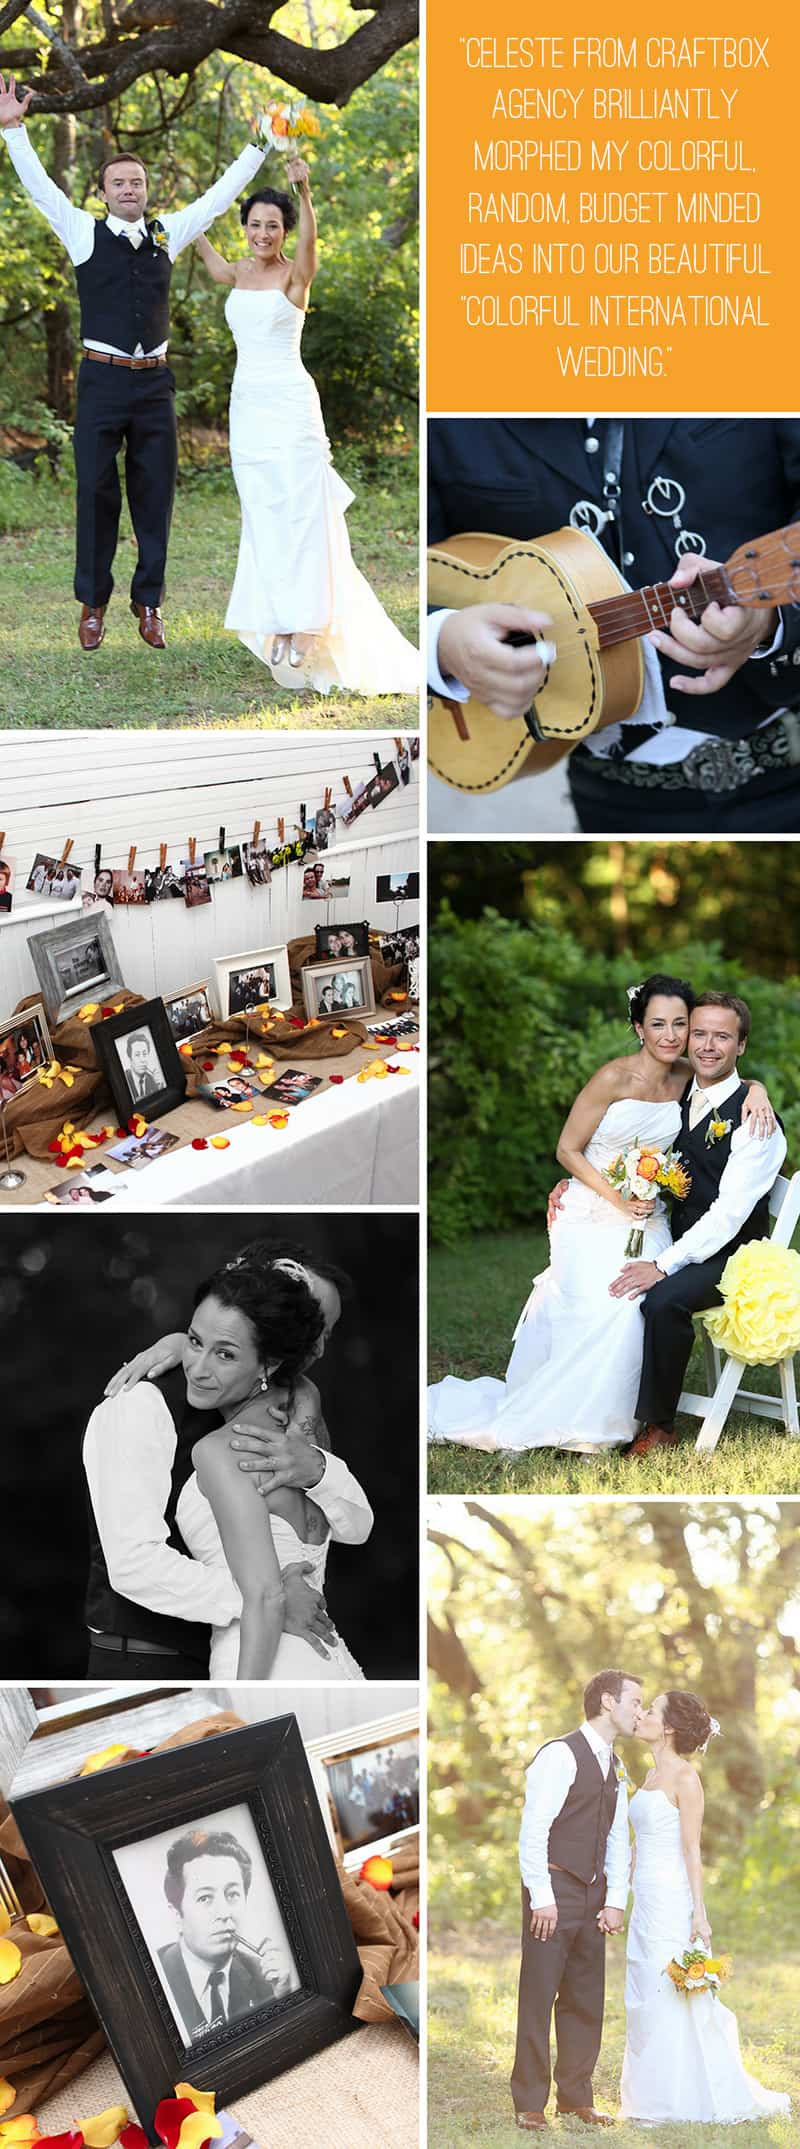 Mexican Themed wedding 4